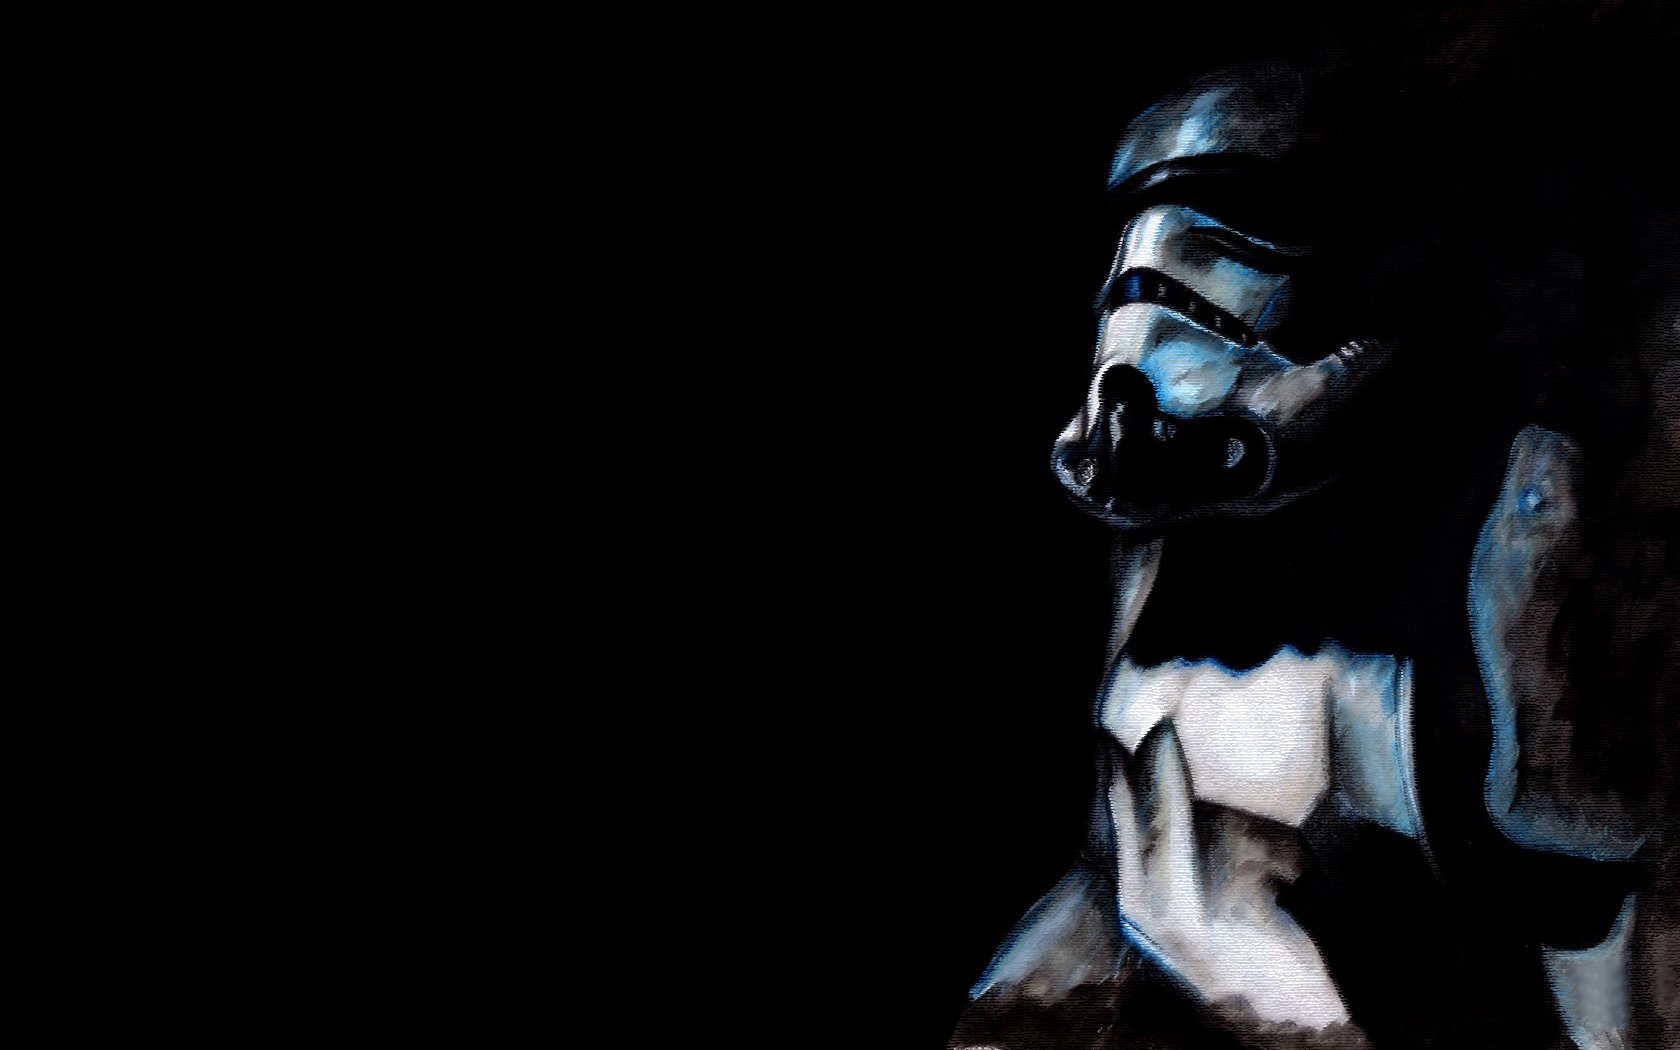 Wallpaper Abyss Explore the Collection Star Wars Movie Star Wars 61047 1680x1050